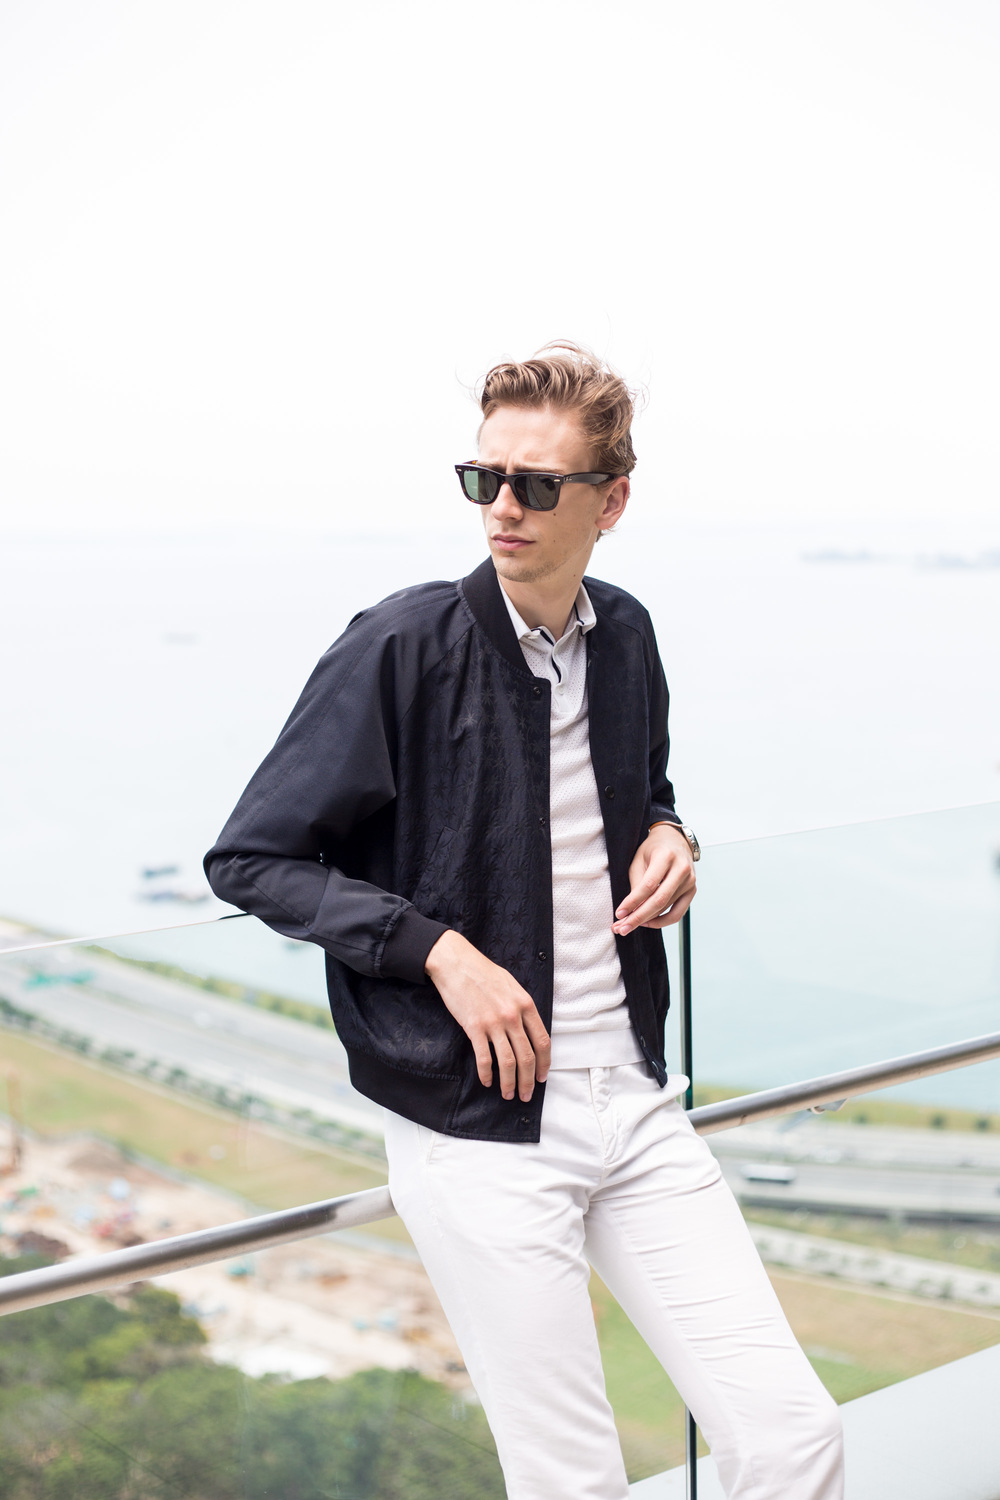 I am wearing a Paul Smith Bomber jacket via Club21, Zara Polo shirt, GANT trousers and Ray-Ban Wayfarer sunglasses.